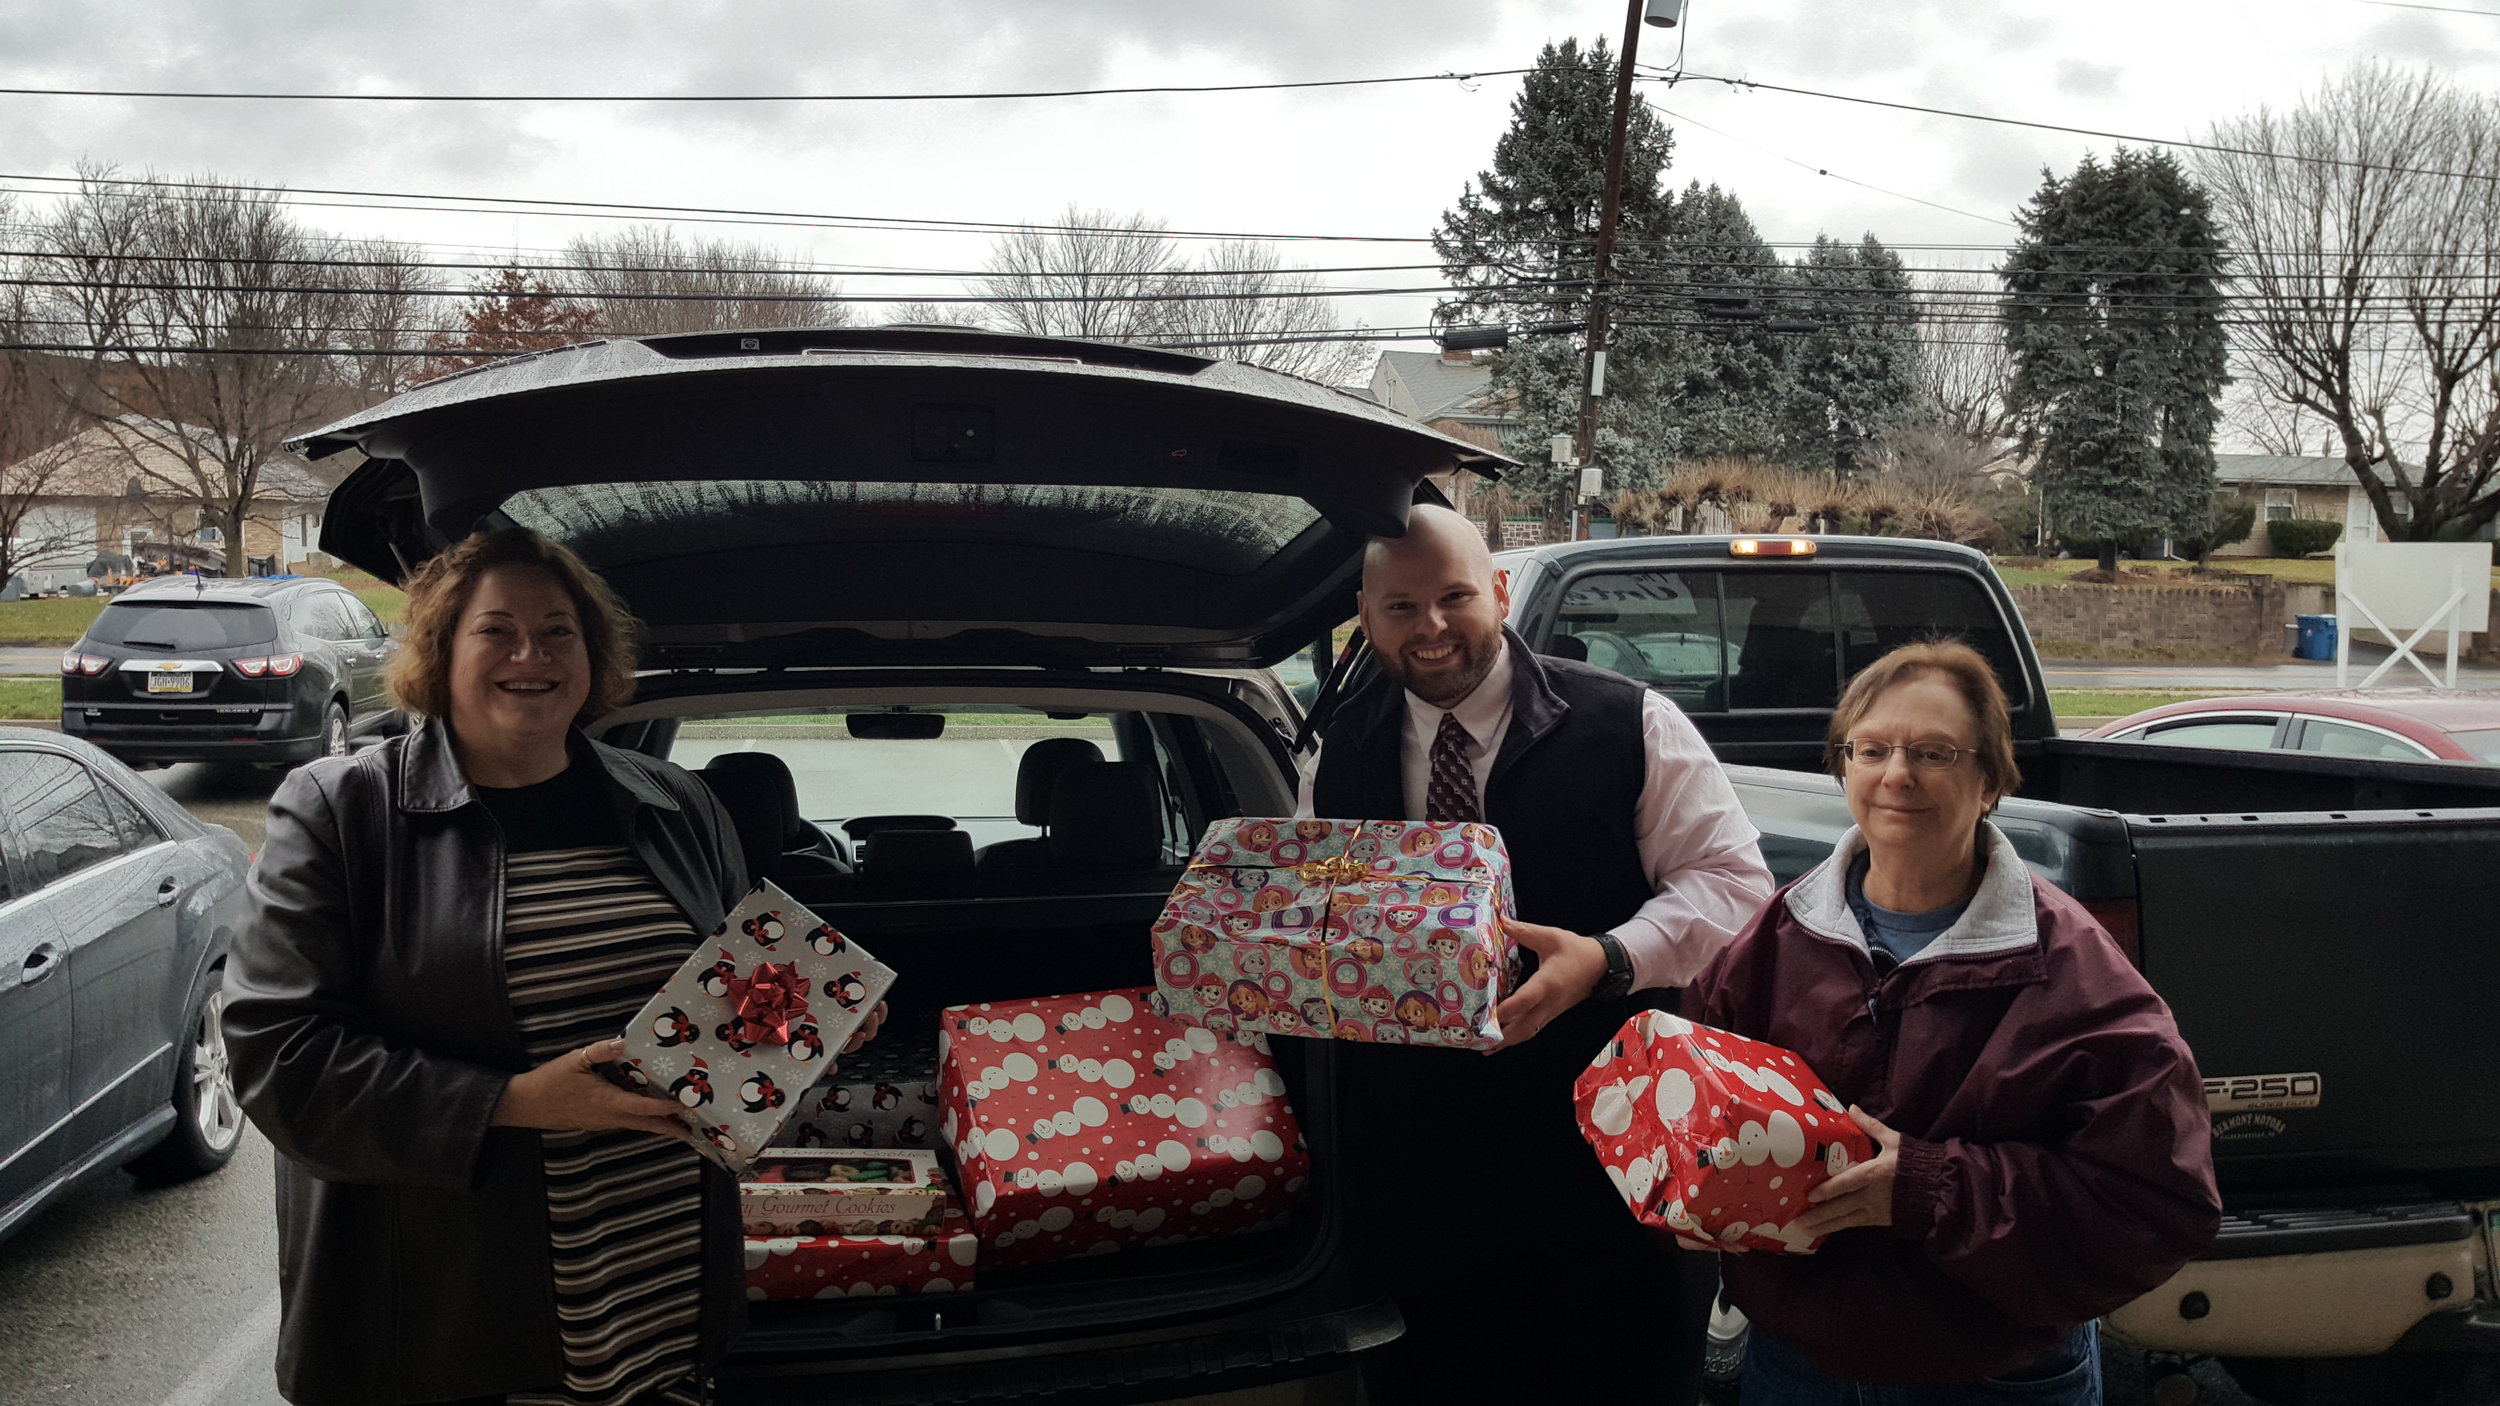 In December, presents collected at our Holiday Party were presented to Montgomery County Veteran Center for a Marine family in need. CMC BPW also donated to Norristown State Hospital and Parkside Adult Day.